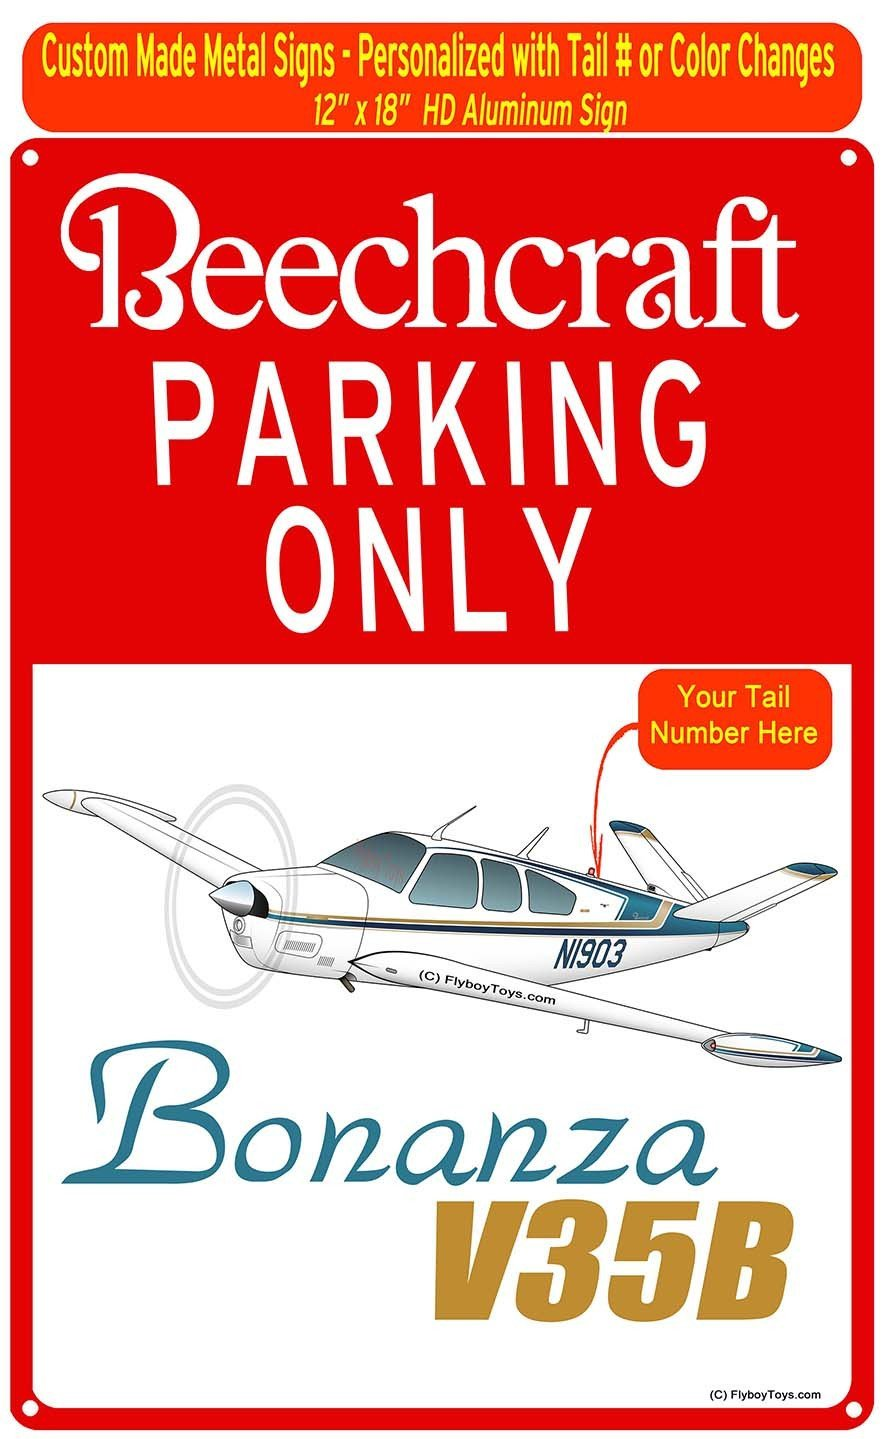 Cheap Beechcraft Bonanza For Sale, find Beechcraft Bonanza For Sale